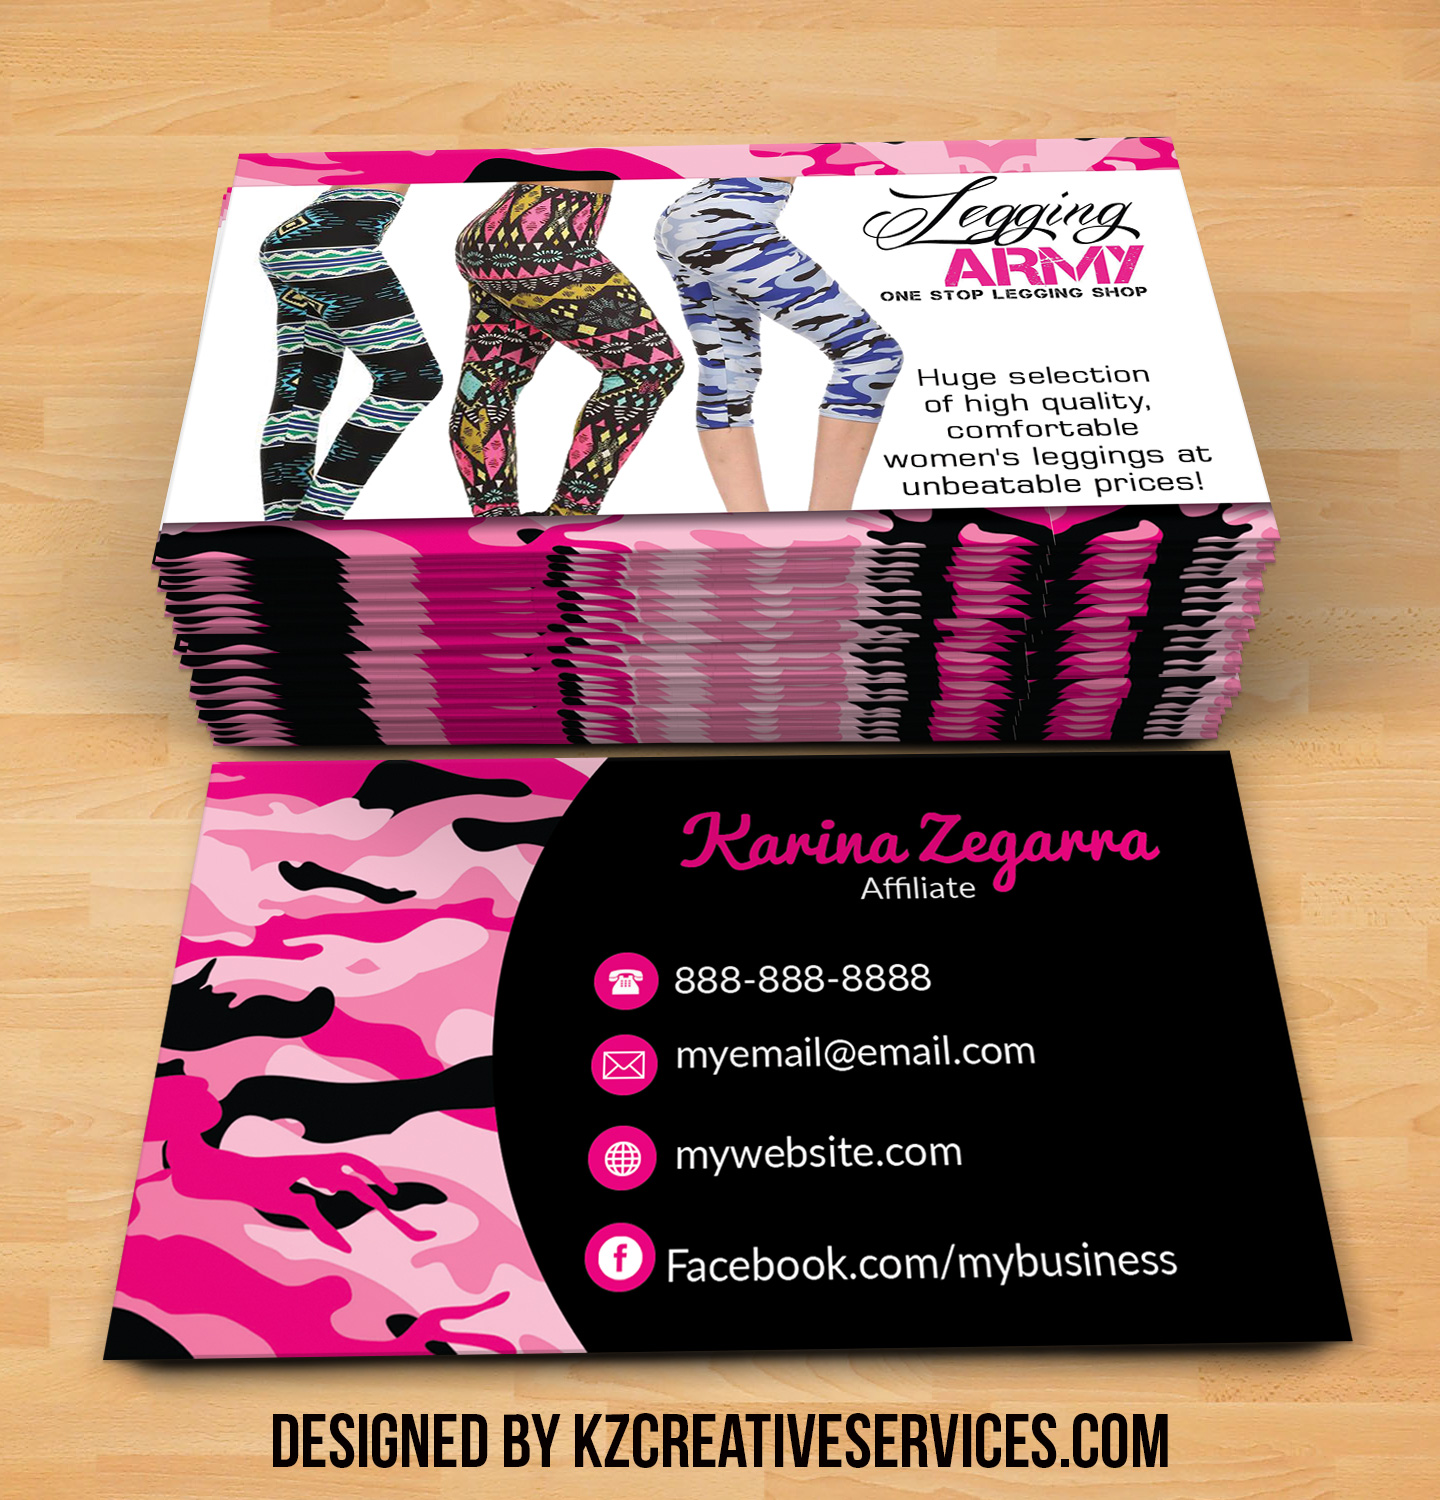 Legging Army Business Cards style 2 · KZ Creative Services ...